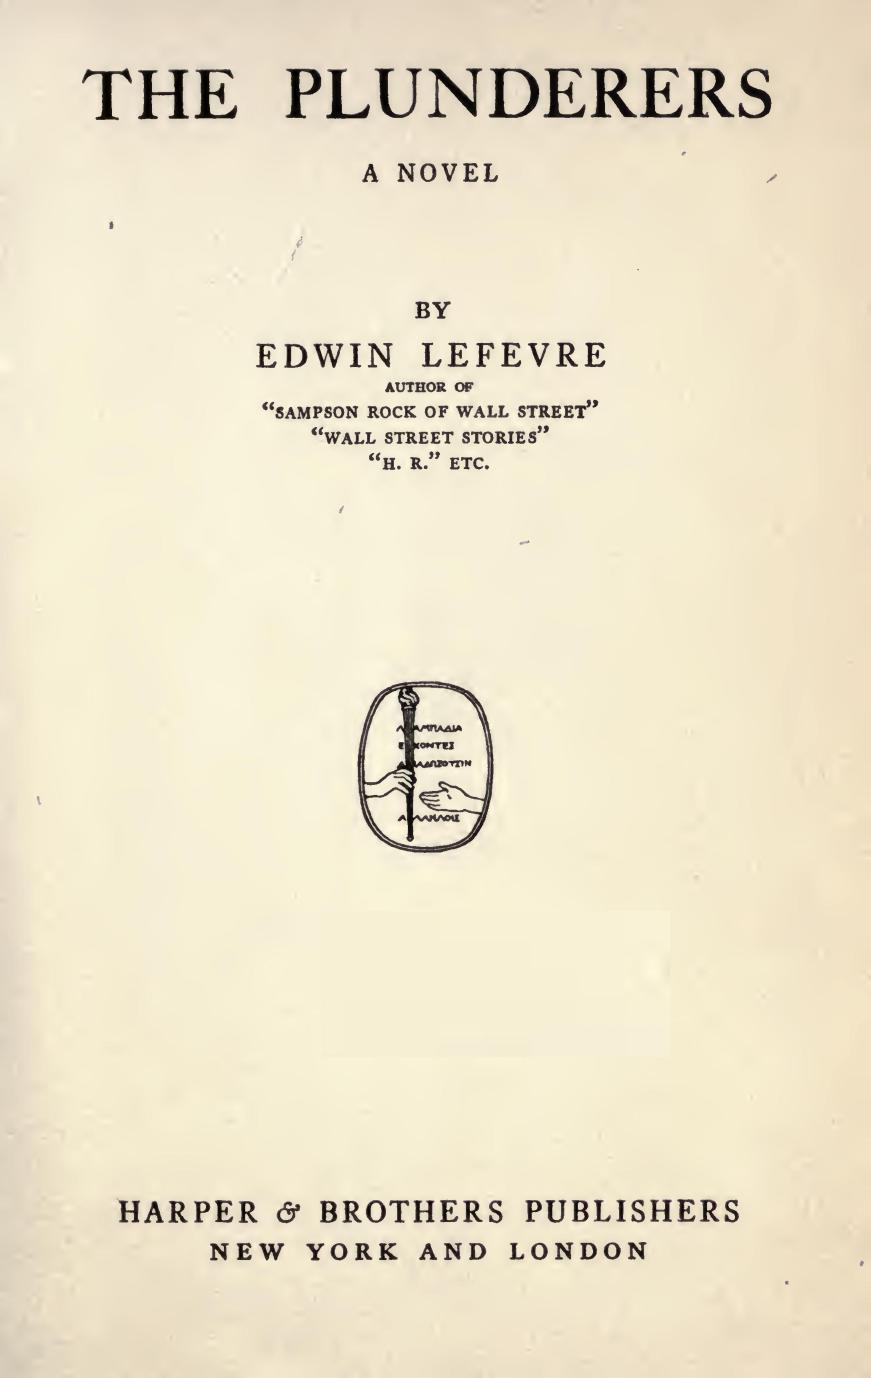 The Plunderers, by Edwin Lefevre